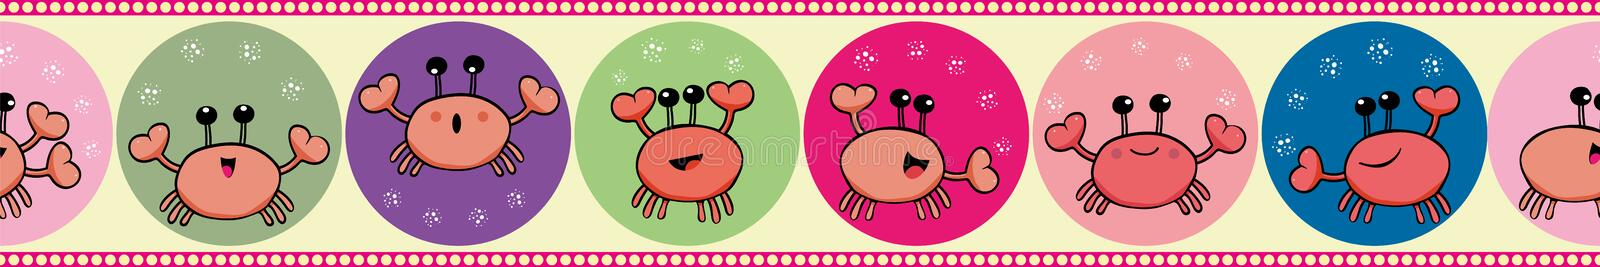 Cute crab juggling with bubbles in border design. Seamless geometric vector pattern on light yellow background with. Cute orange crab juggling with bubbles royalty free illustration